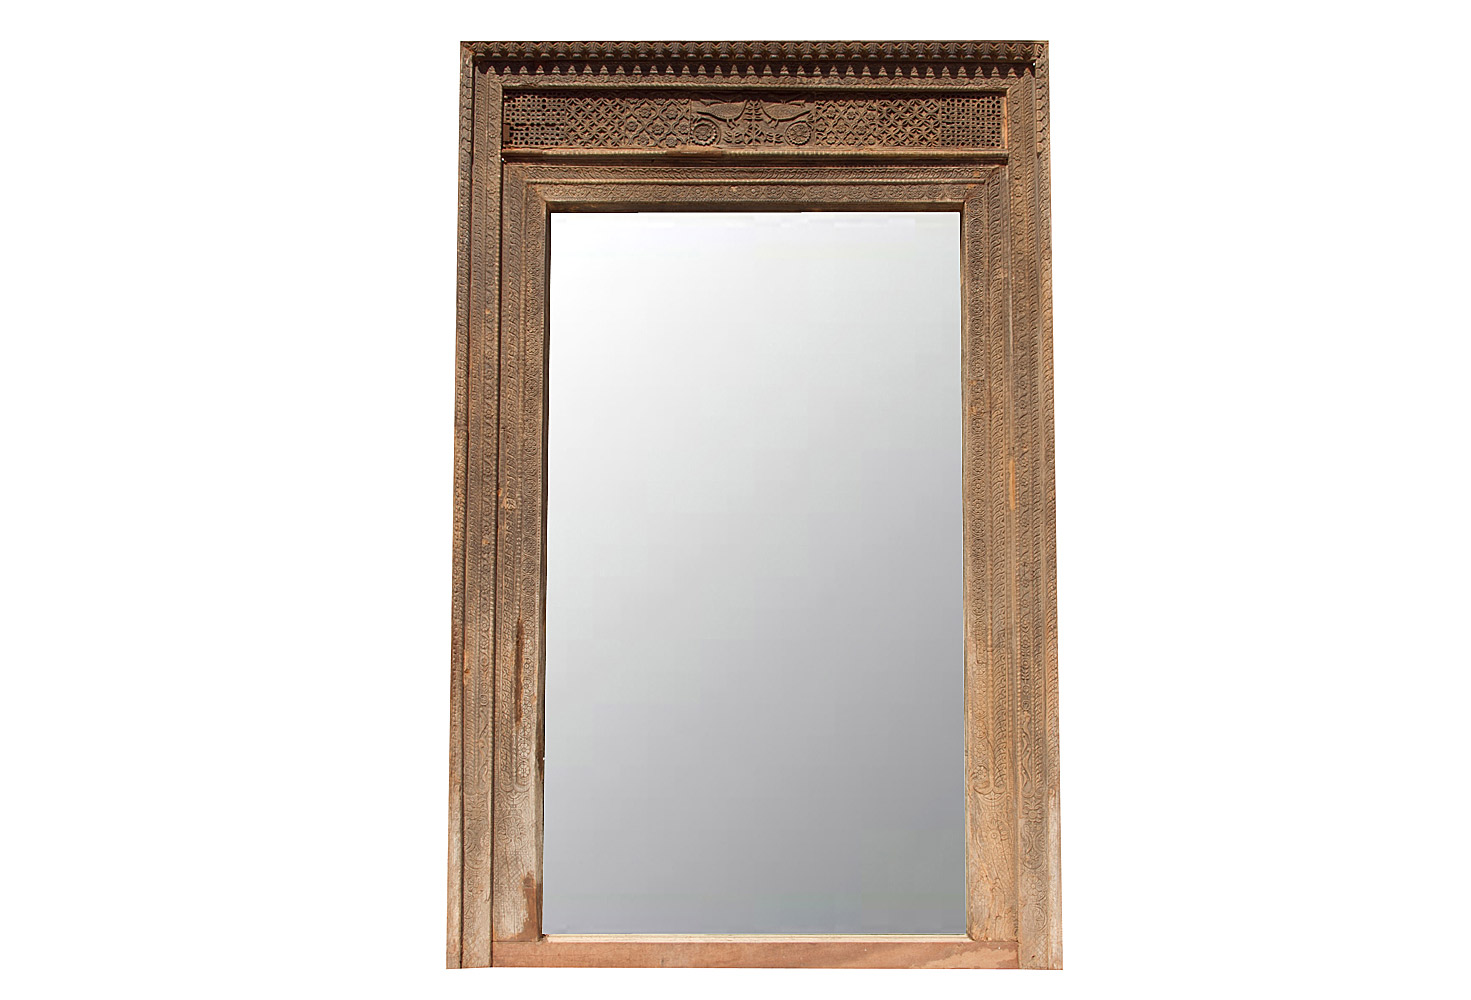 Antique Architectural Hand Carved Door Frame Mirror  : antique architectural hand carved door frame mirror5 from www.omerohome.com size 1471 x 1000 jpeg 192kB